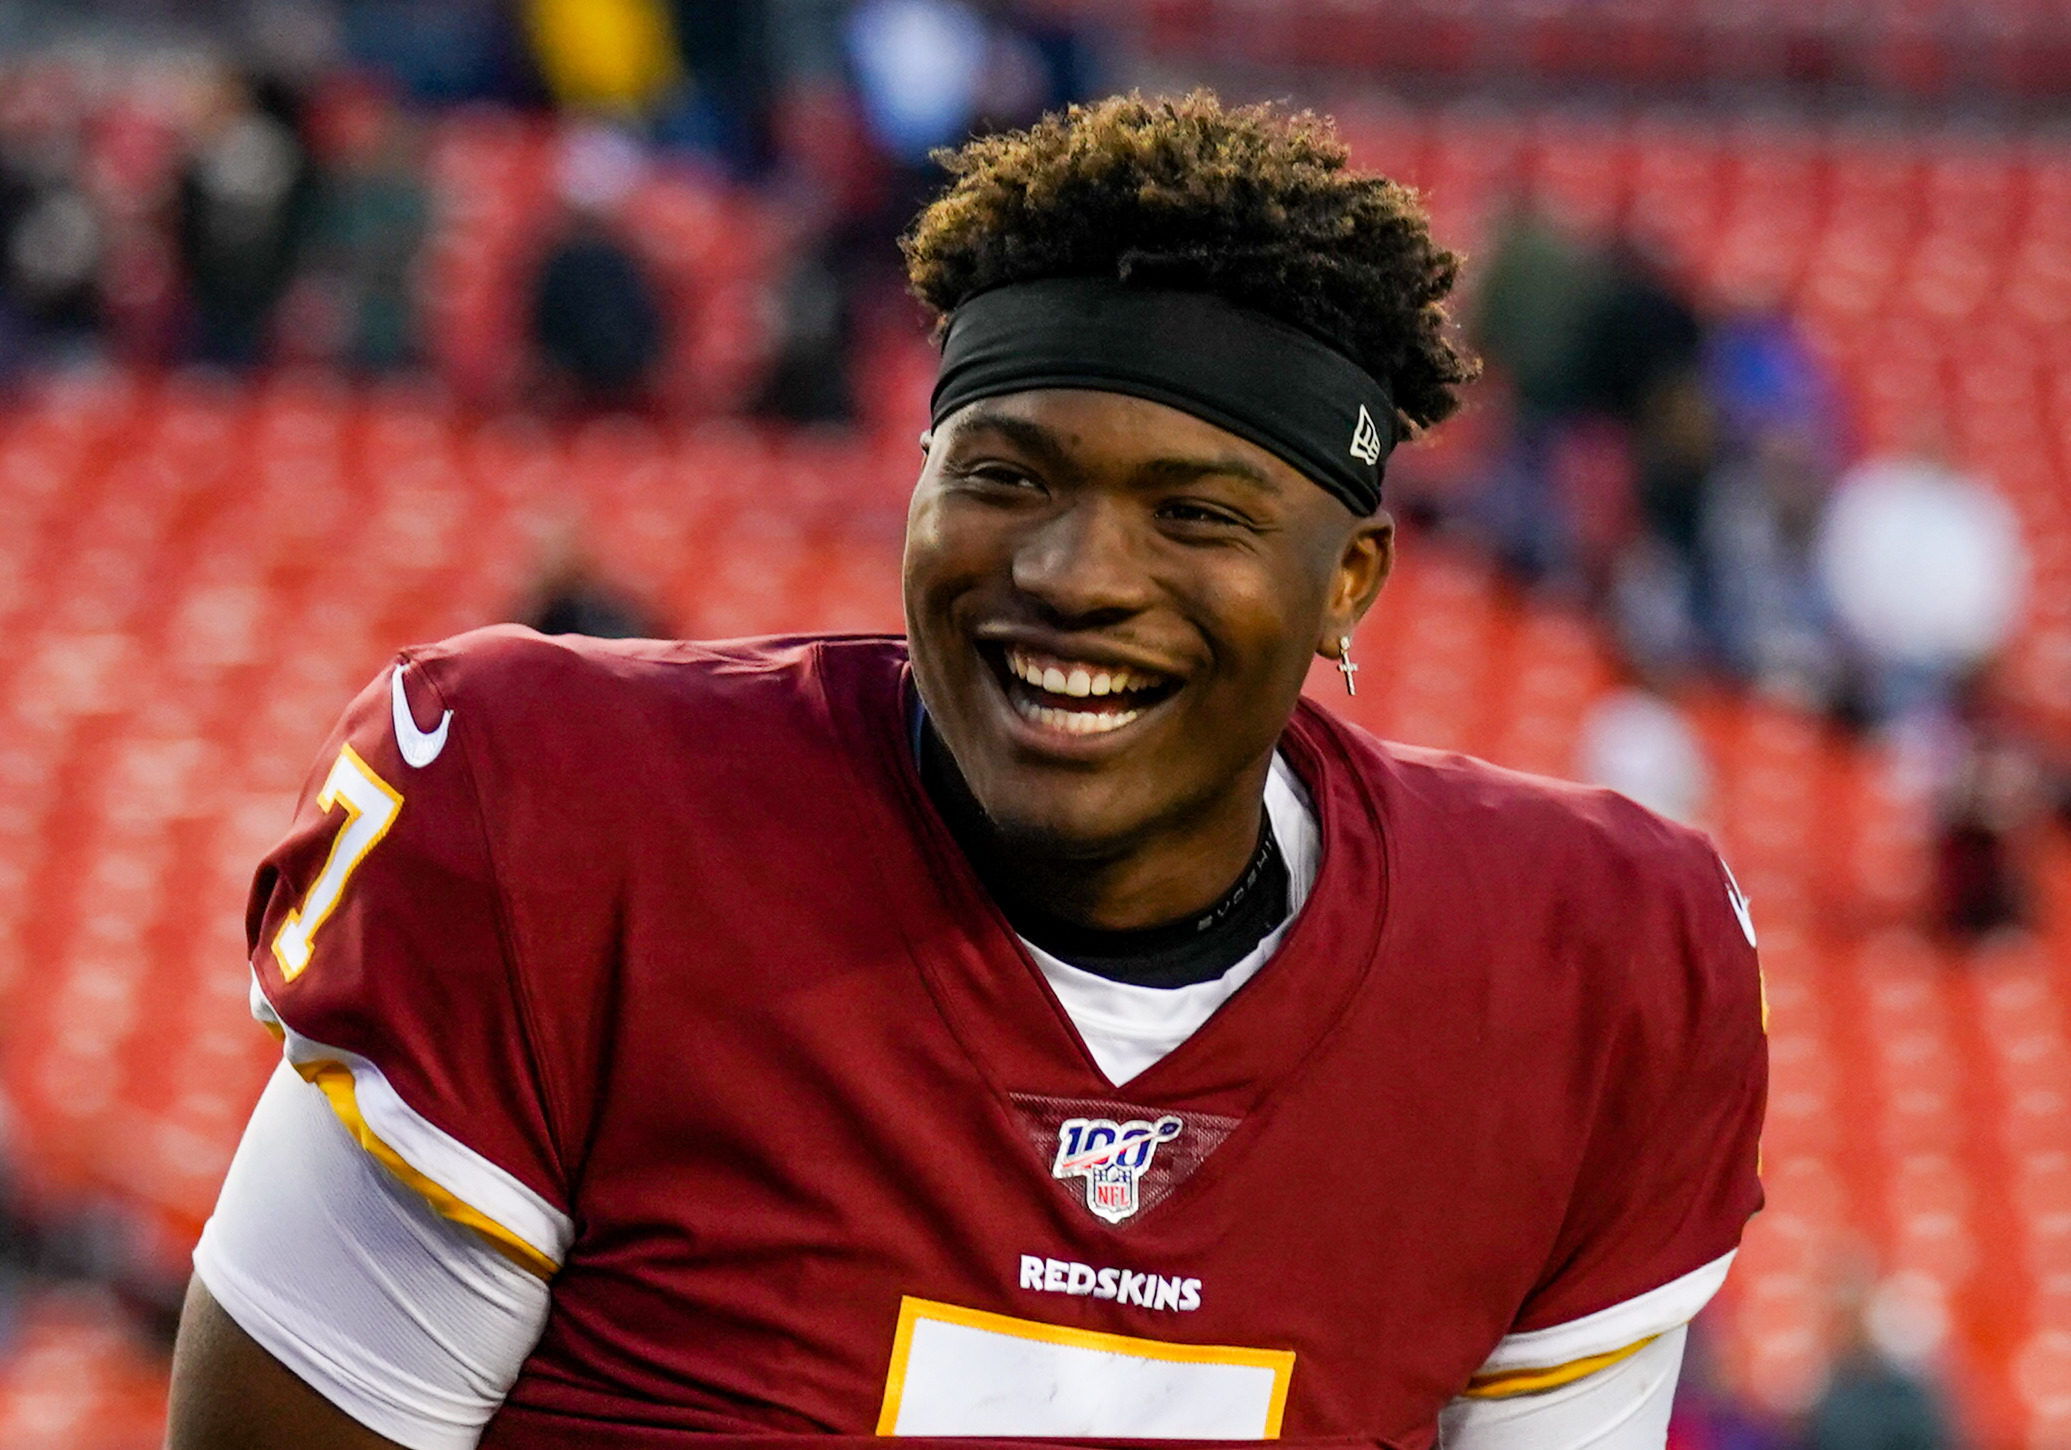 Dwayne Haskins smiles on the sideline